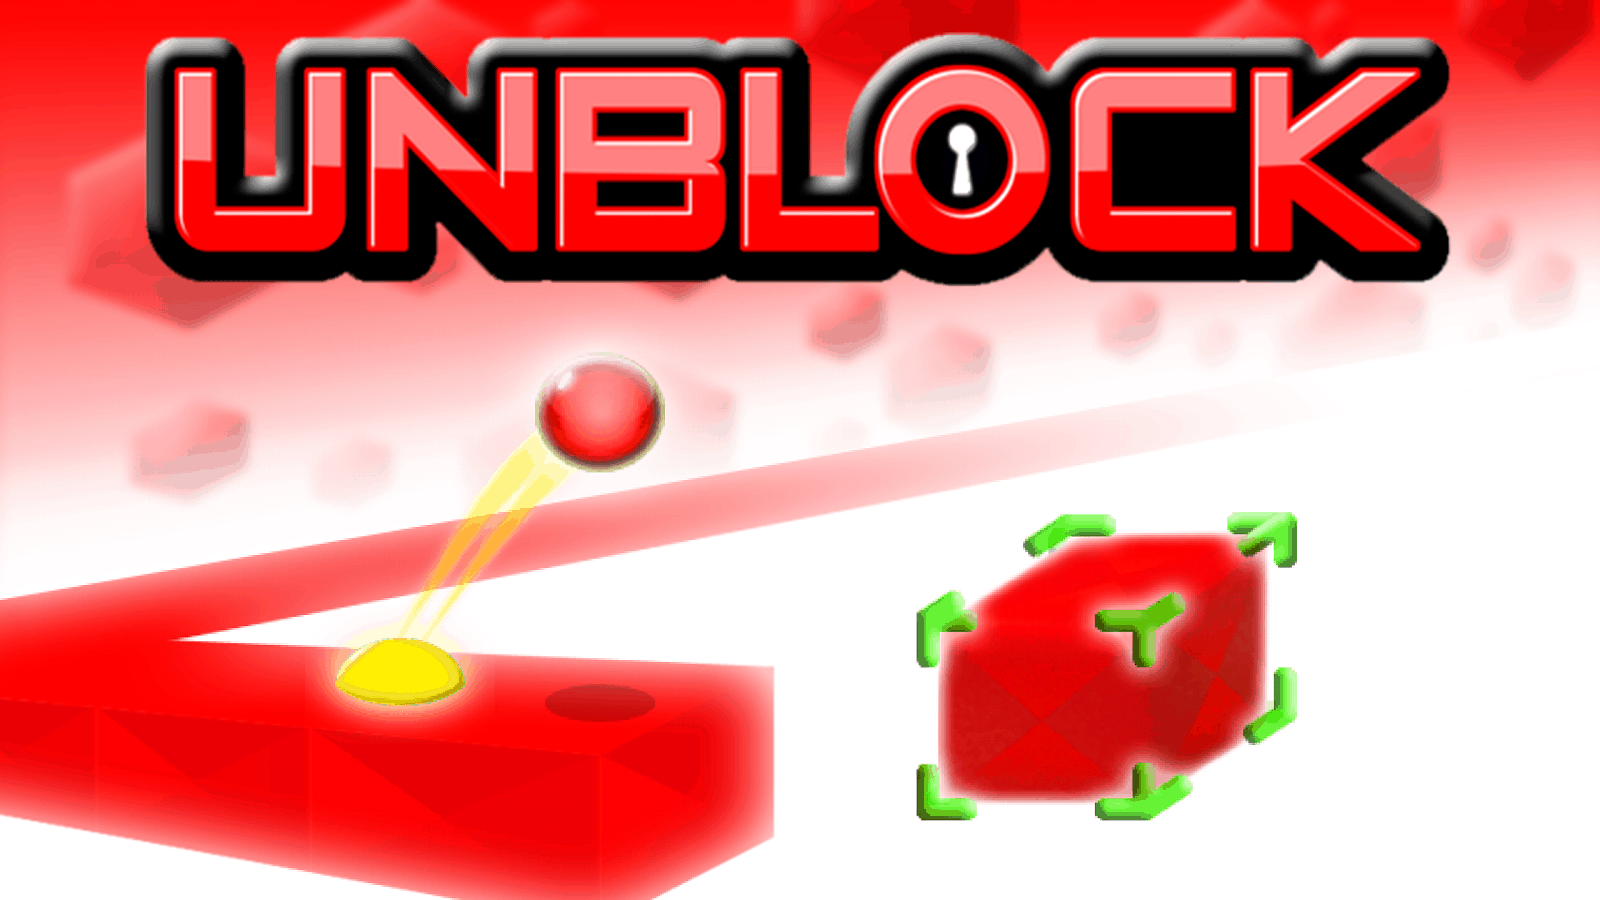 Unblock game is similar to geometry dash but more difficult